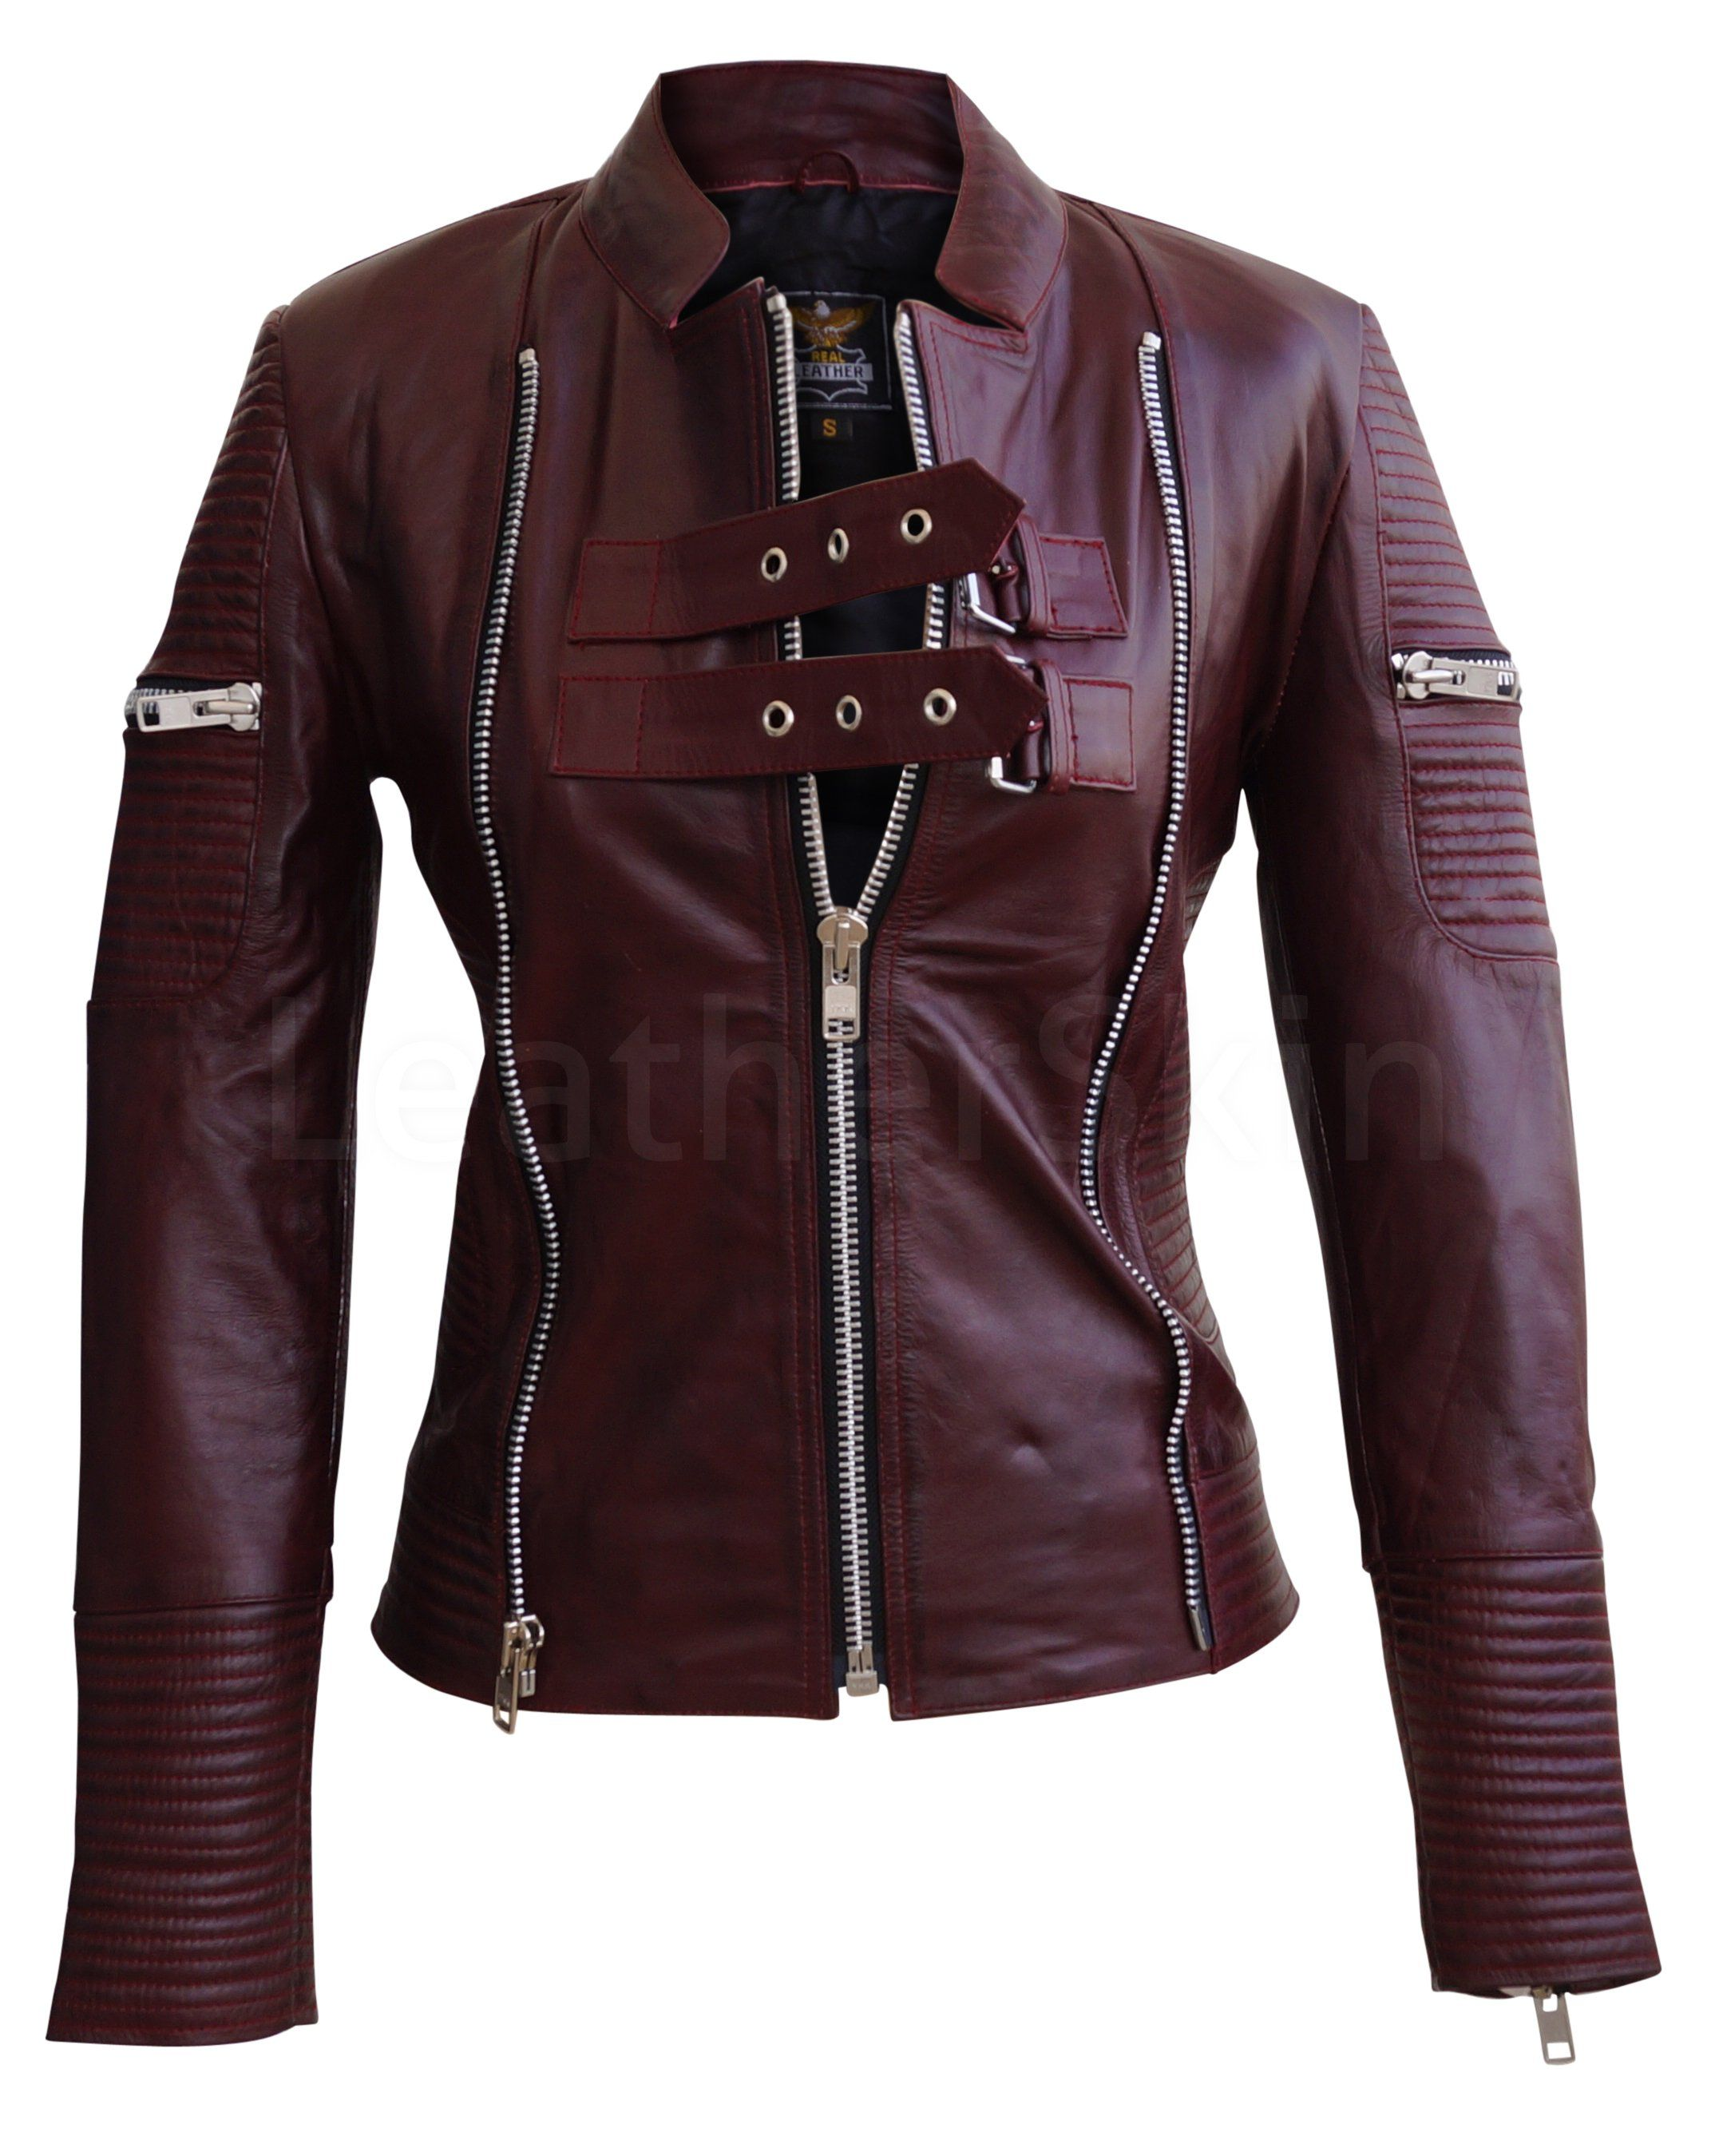 Women Distressed Maroon Red Sheep Skin Rib Quilted Genuine Leather Jacket Leather Jackets Women Leather Jacket Leather Blazer Women [ 2700 x 2148 Pixel ]